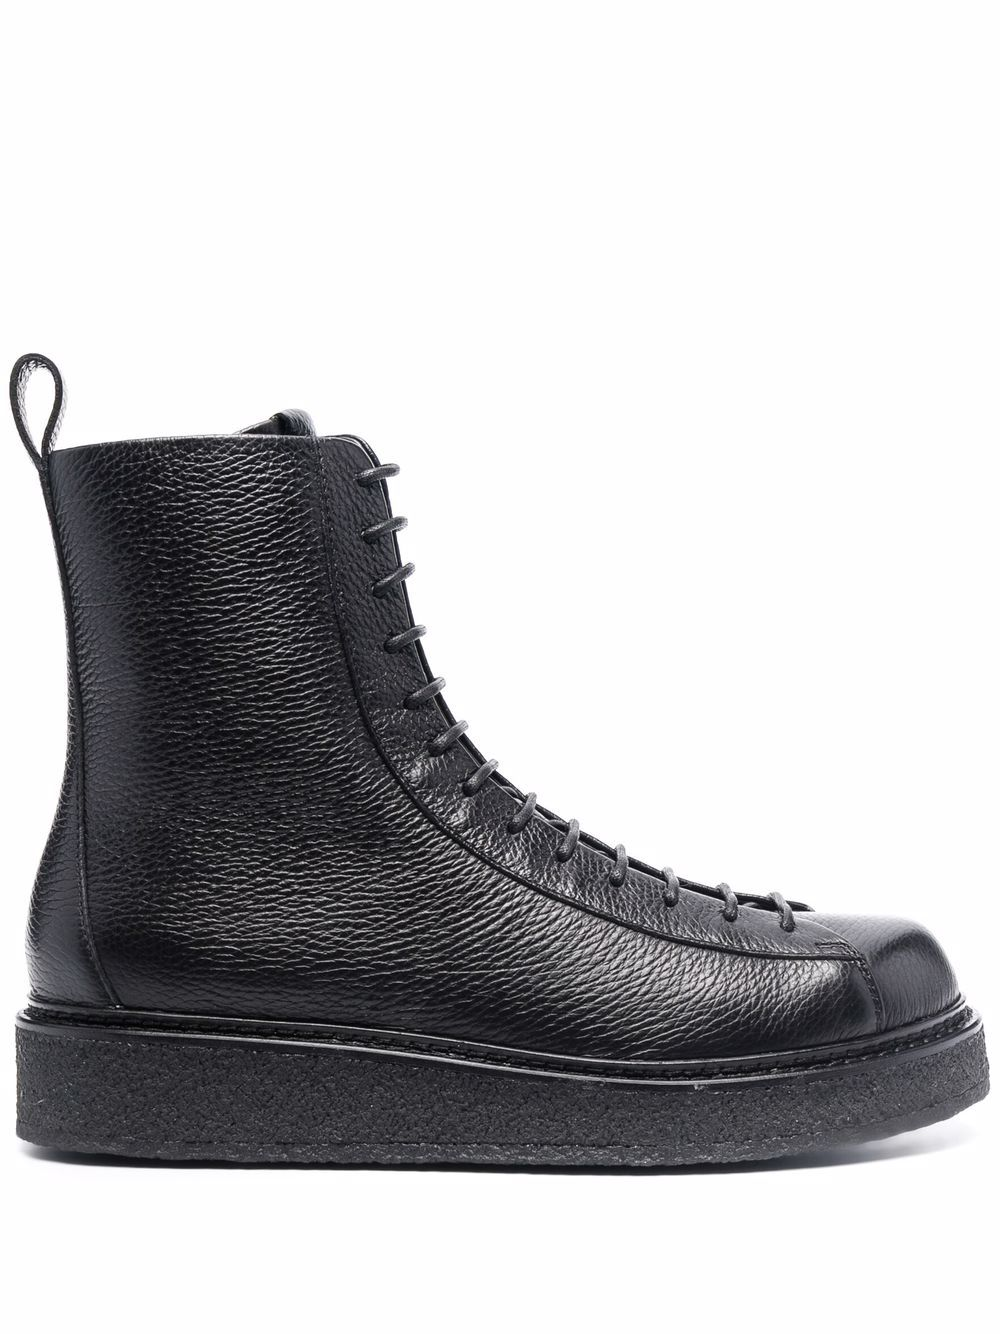 EMPORIO ARMANI- Leather Ankle Boots- Man- 9 - Black